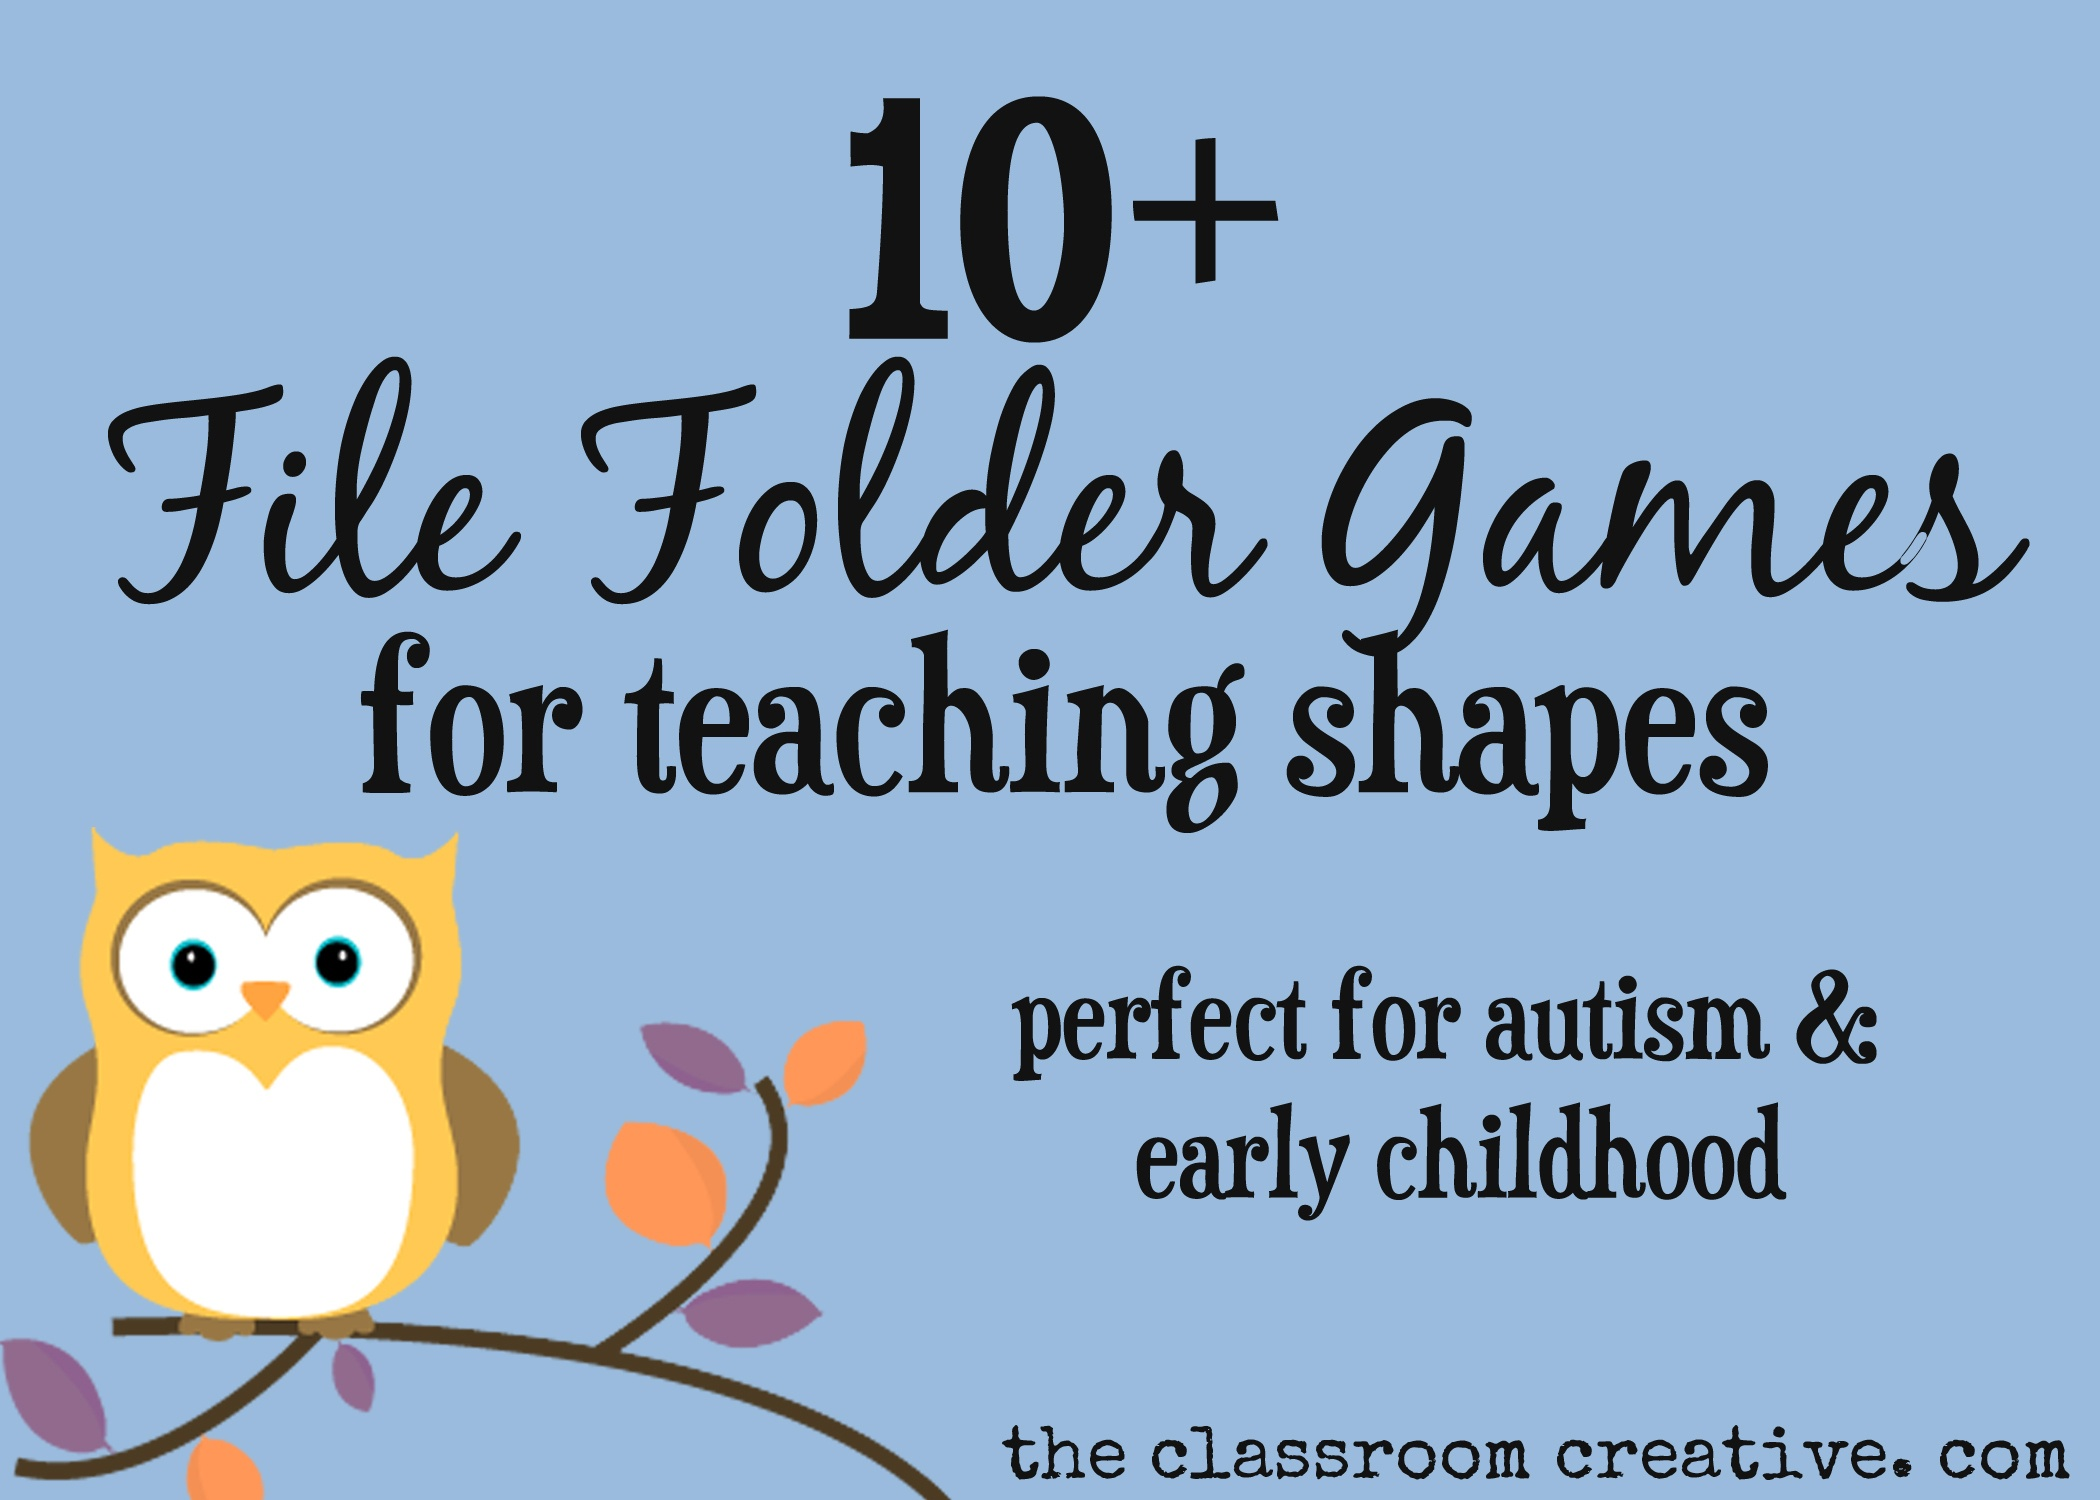 File Folder Games For Teaching Shapes - Free Printable Fall File - Free Printable Fall File Folder Games